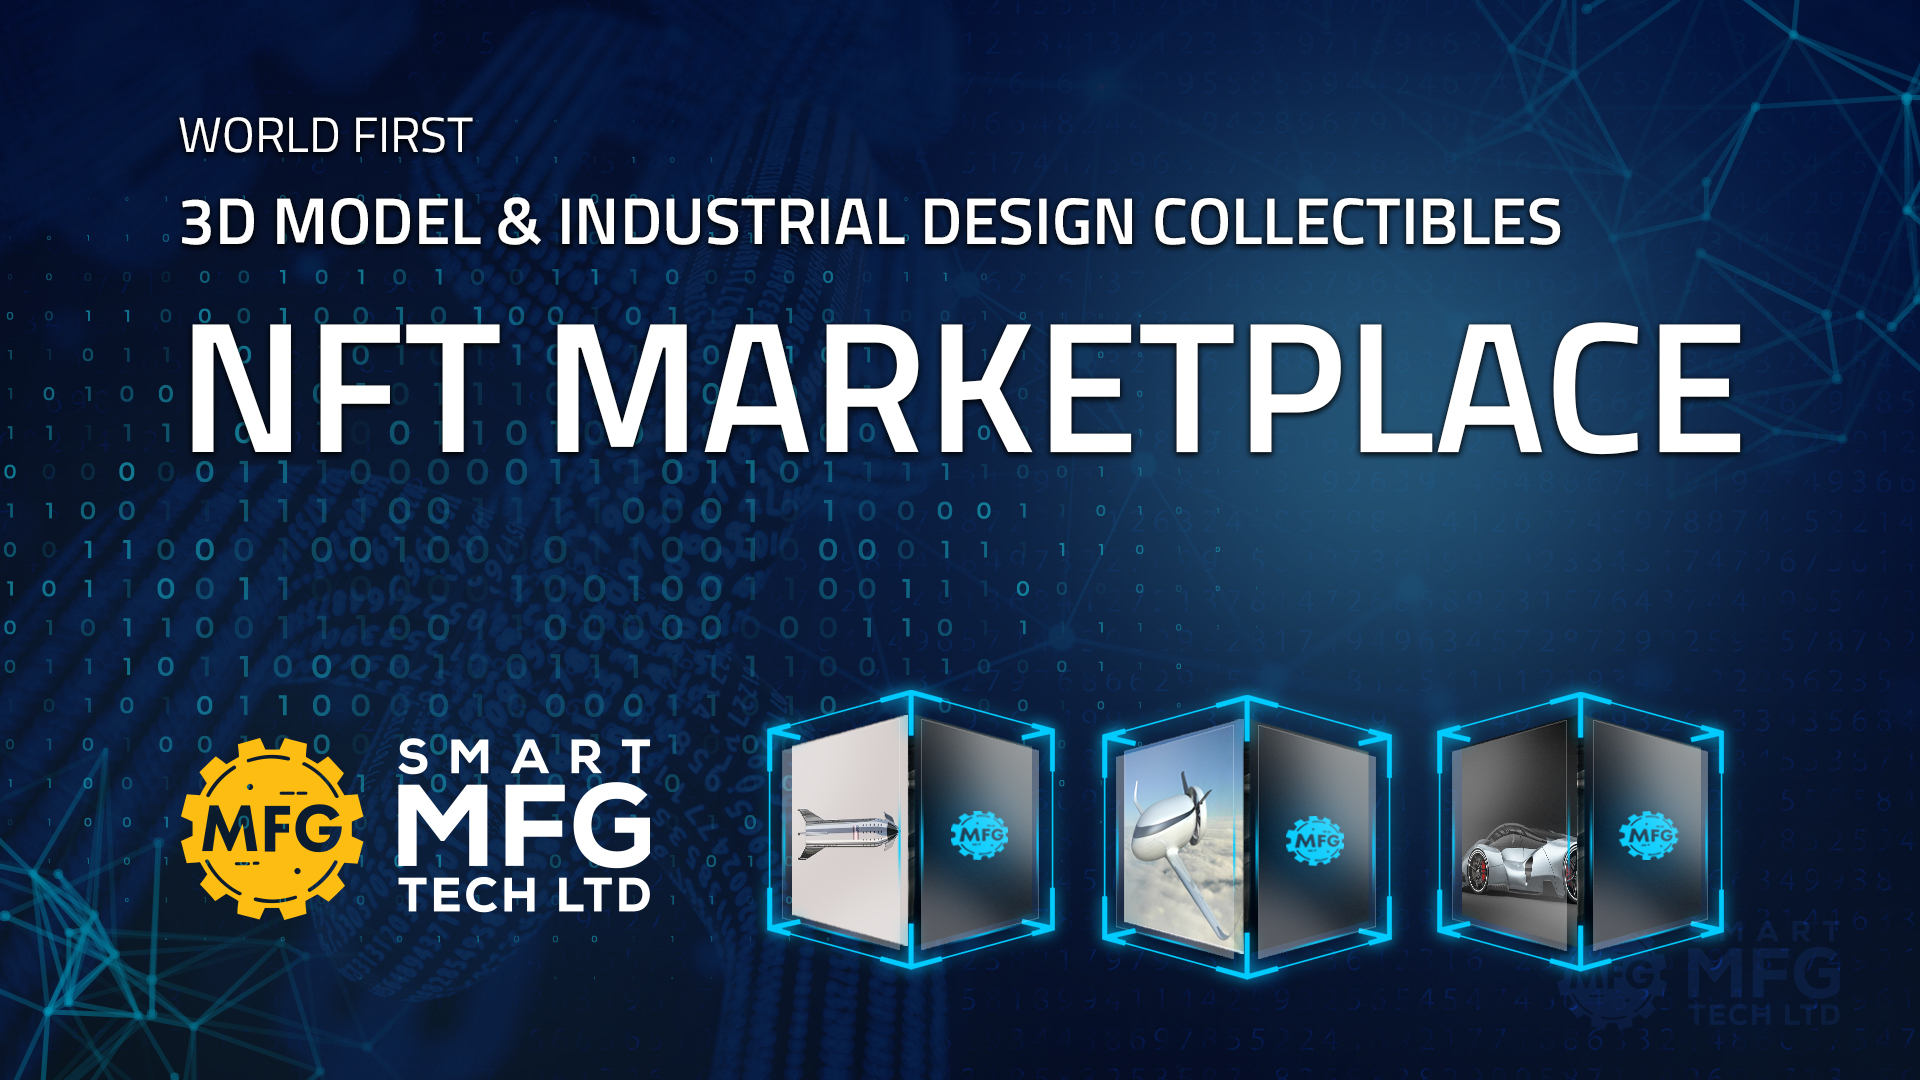 smart-mfg-nft-3dmodel-industrial-design-marketplace